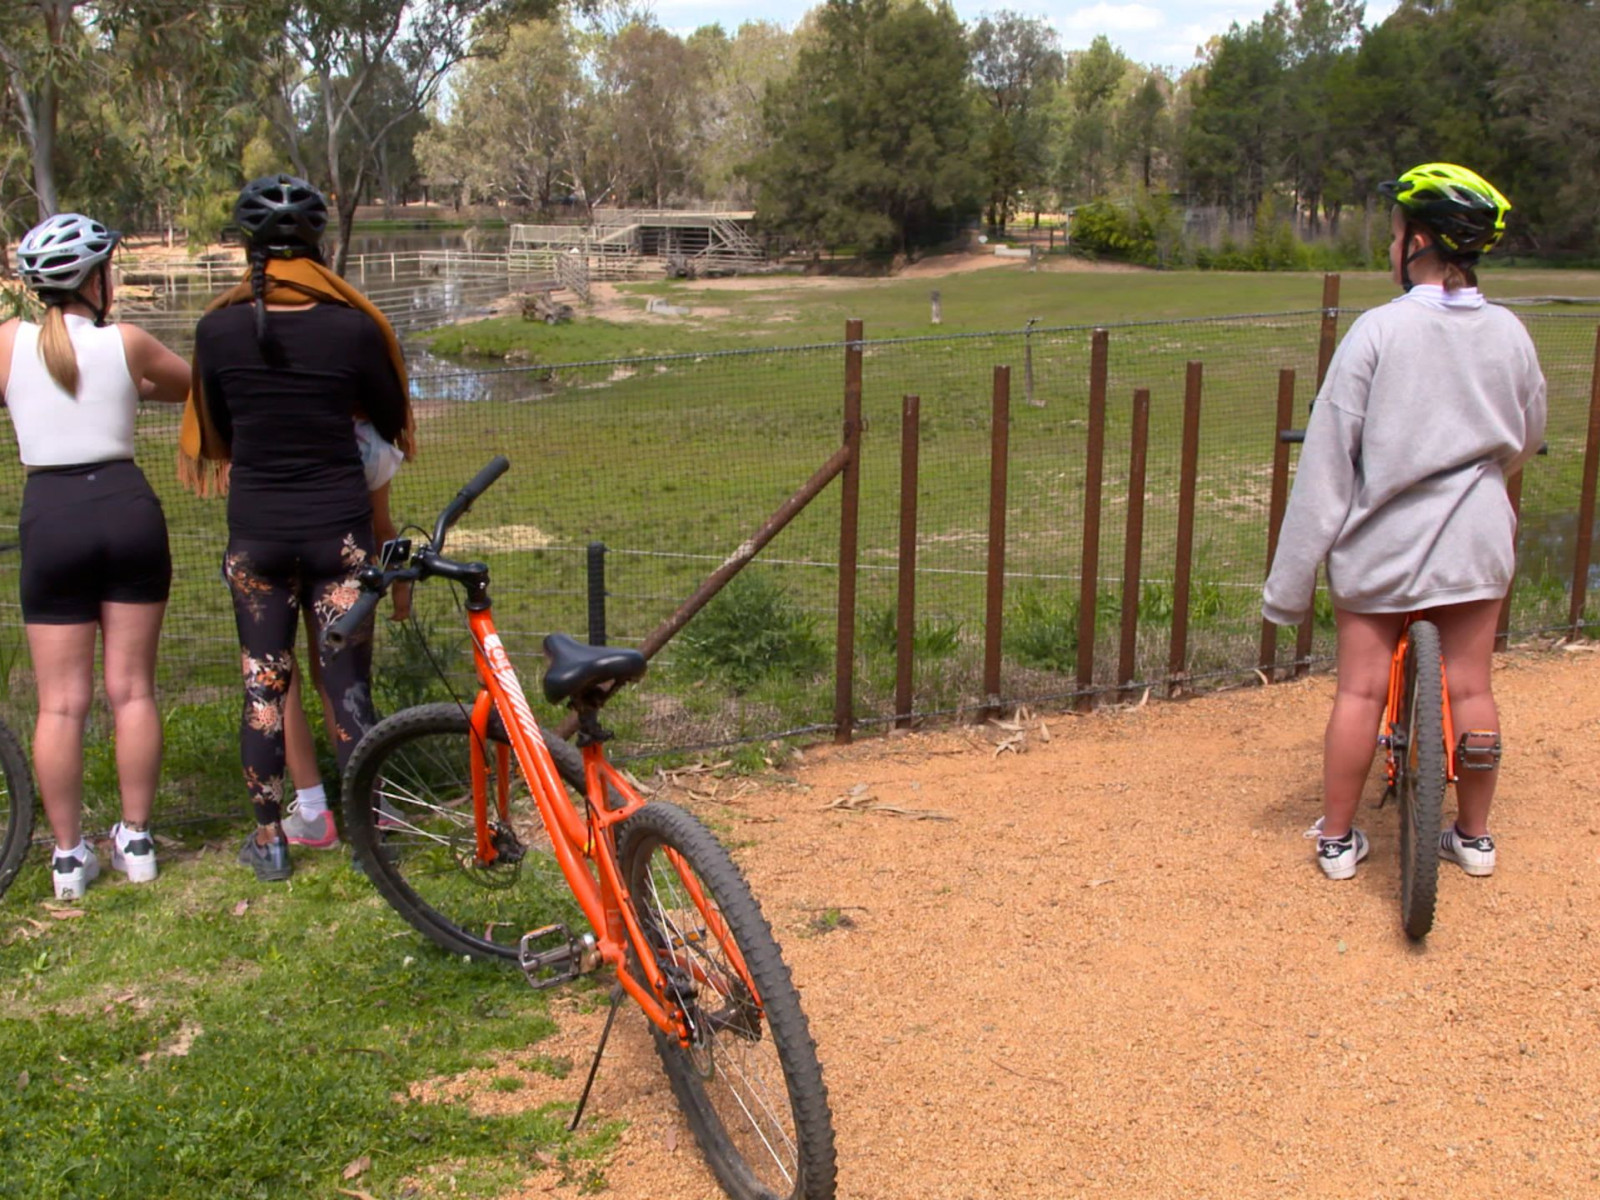 Pitstop while cycling at Taronga Western Plains Zoo